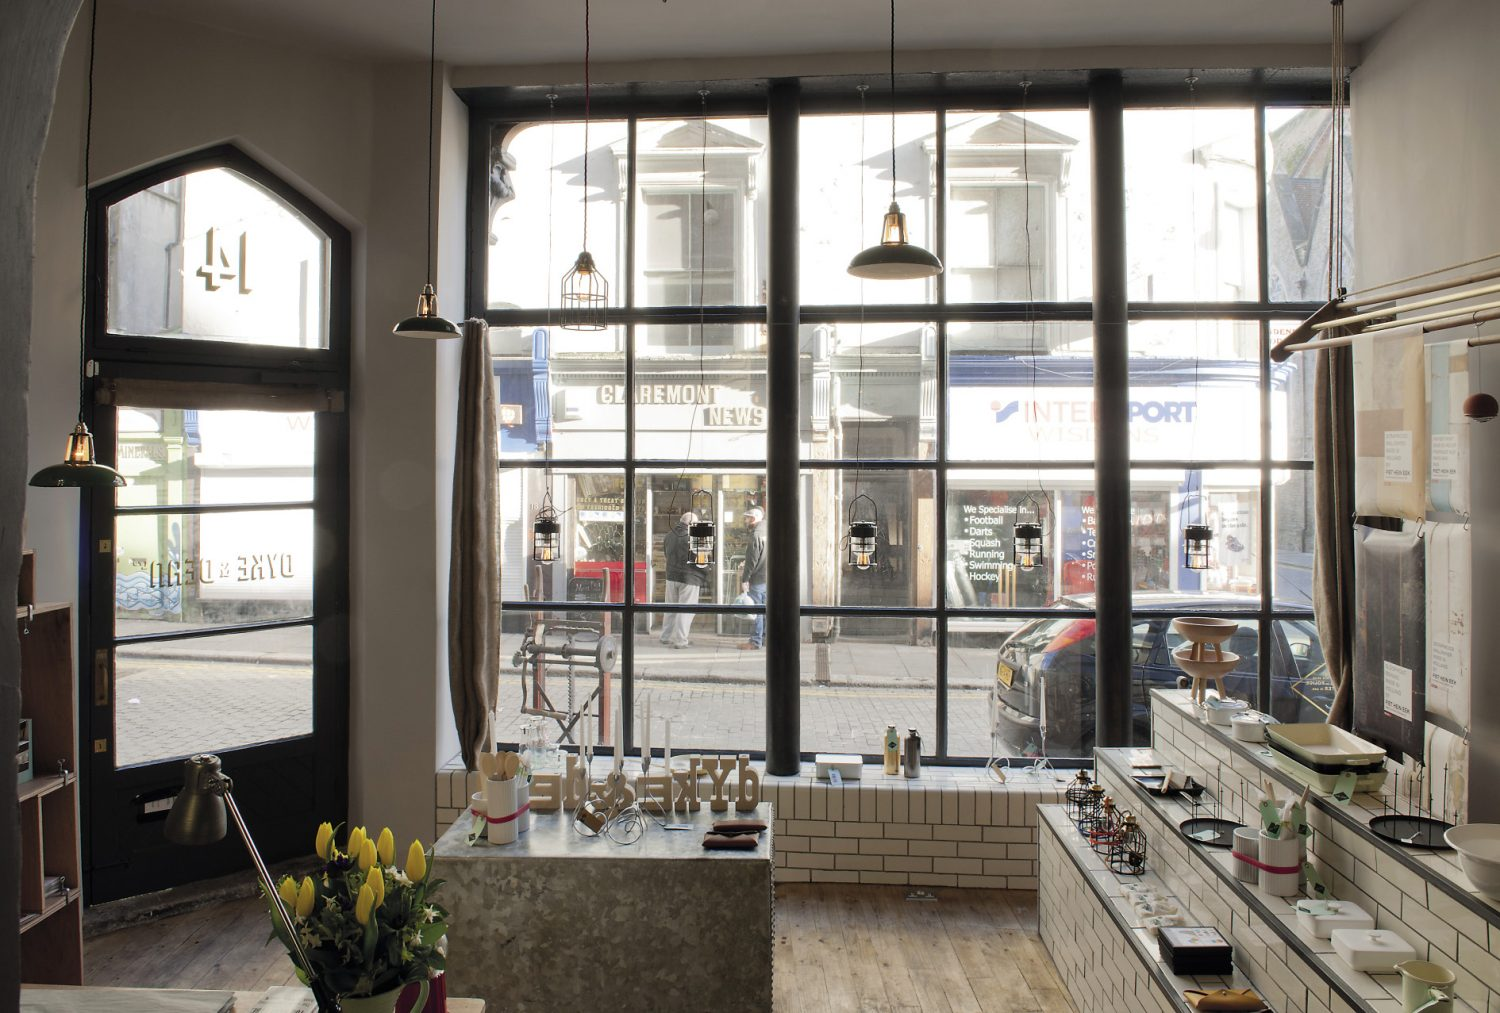 Lorna and Bryan's son Ed's homeware and interiors business, Dyke & Dean, occupies the street level of the building